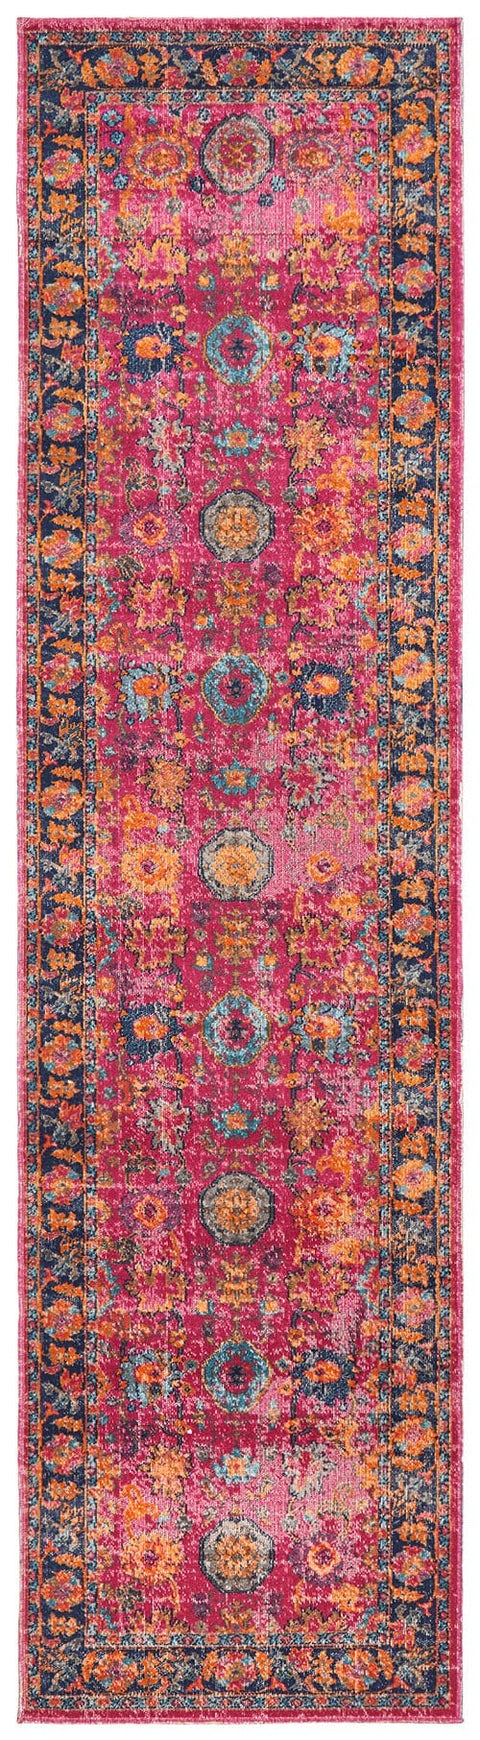 Armant Pink Distressed Transitional Runner Rug